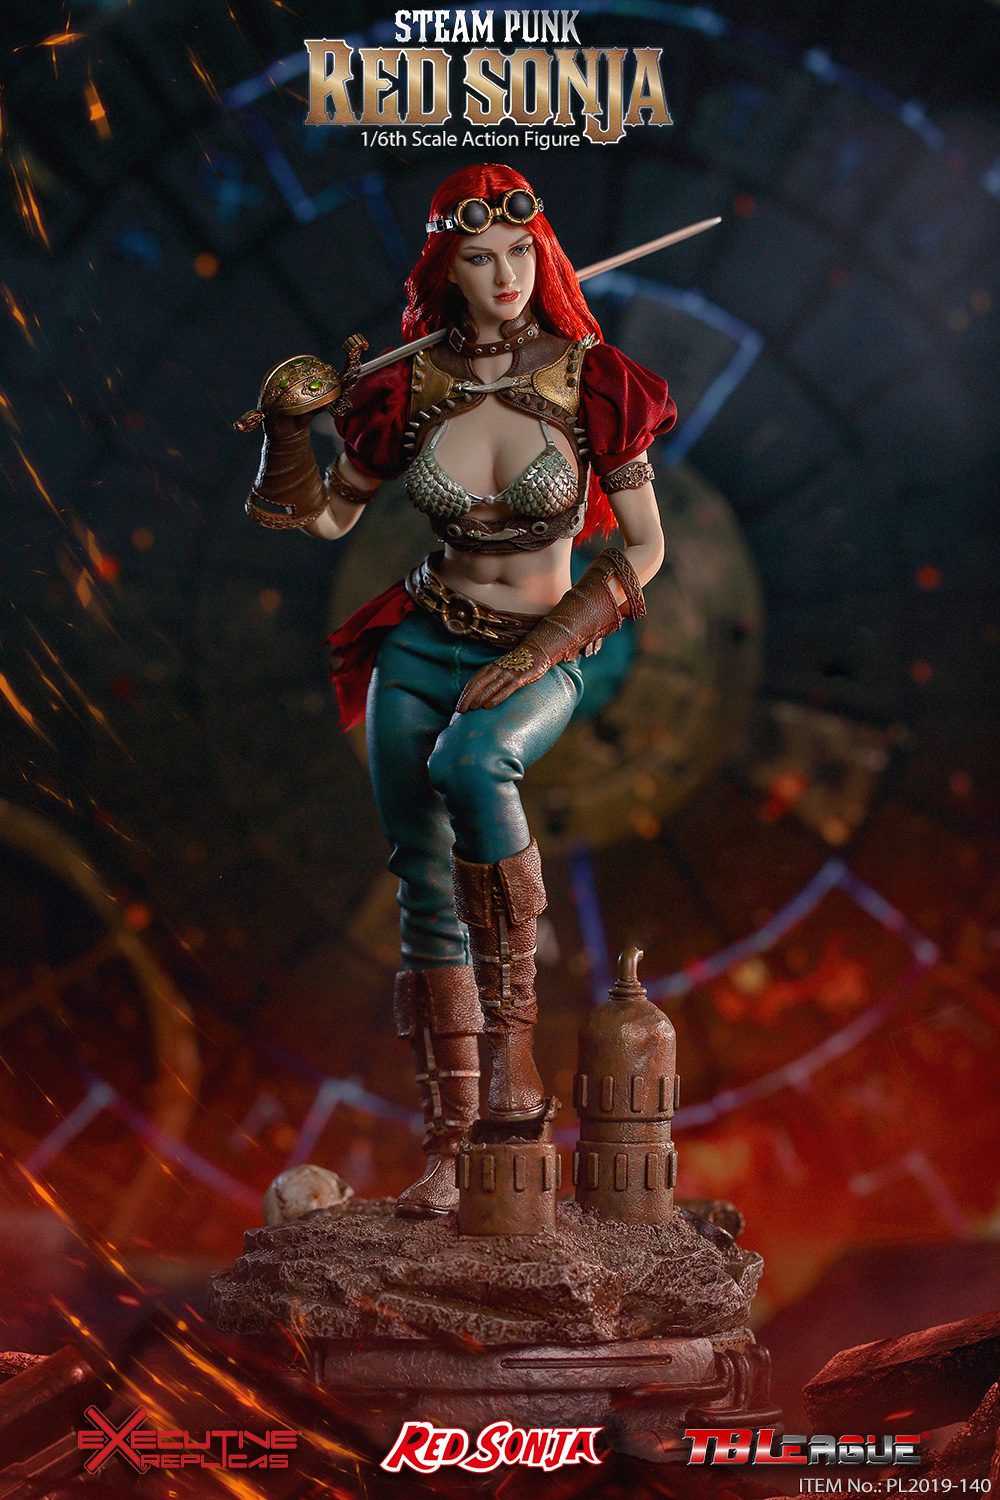 steampunk - NEW PRODUCT: TBLeague: 1/6 Steam Punk - Red Sonja / Queen Excalibur [punk version] PL2019-140-A/B 20192410